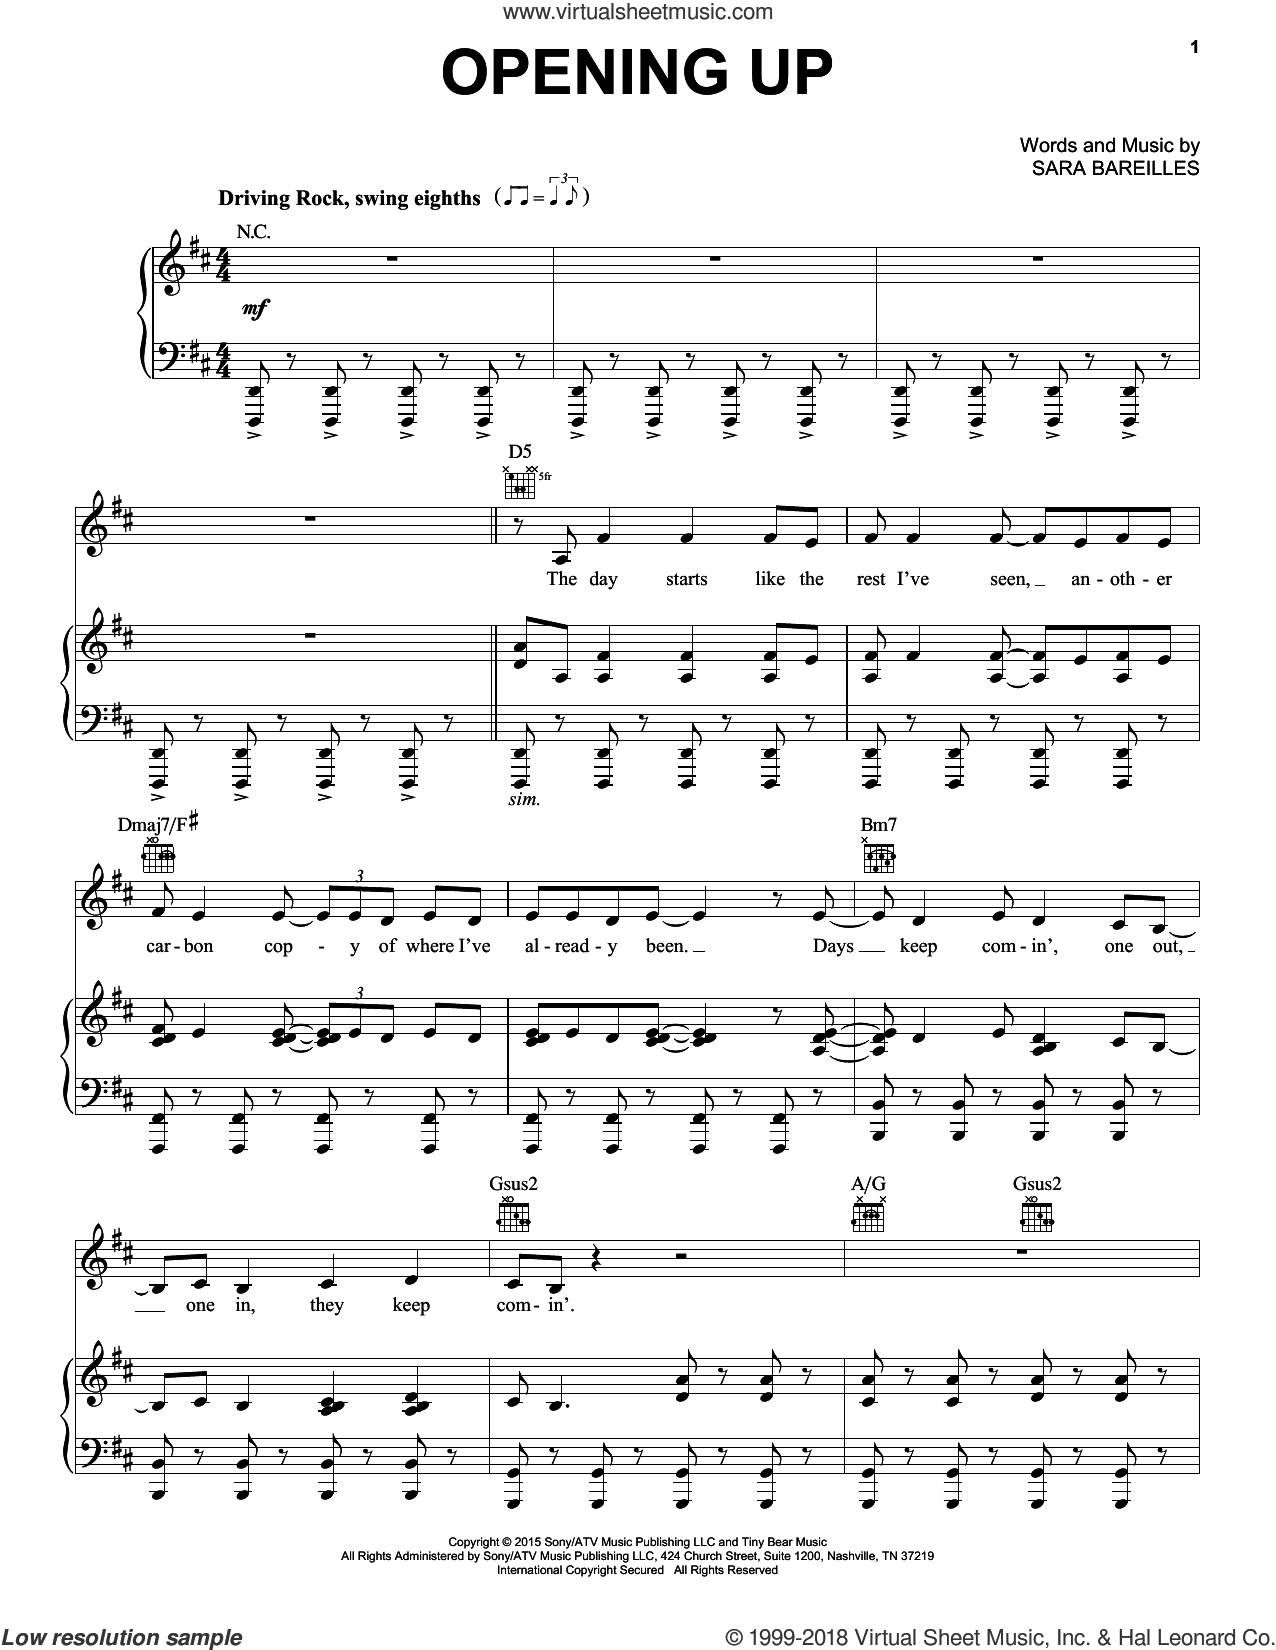 Opening Up (from Waitress The Musical) sheet music for voice, piano or guitar by Sara Bareilles, intermediate skill level